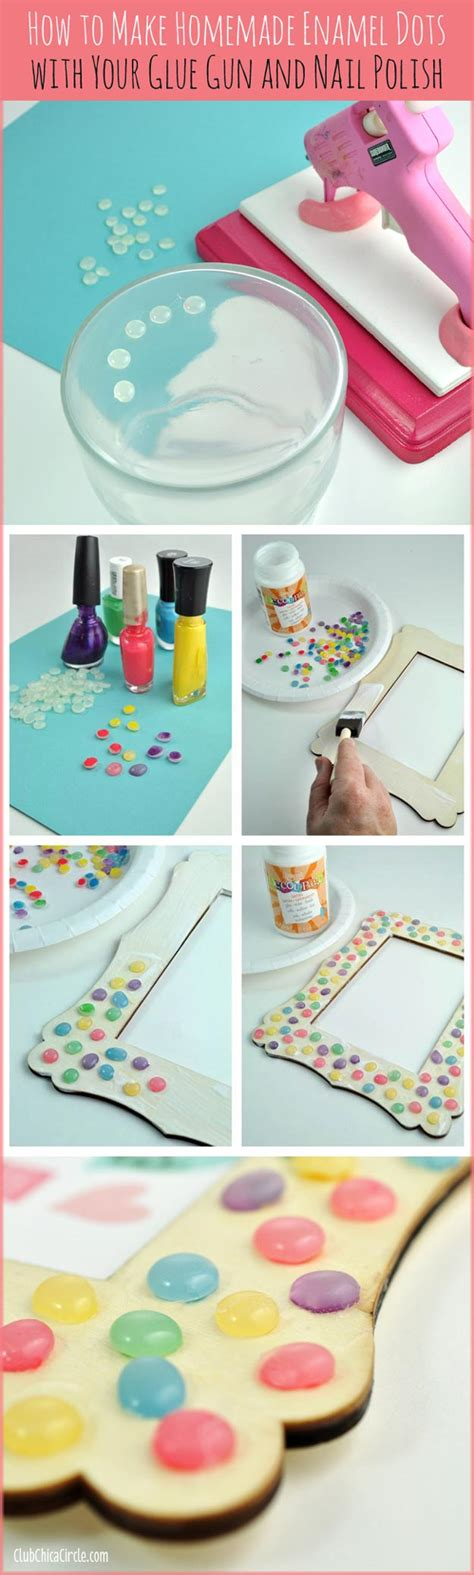 cool diy craft projects 31 incredibly cool diy crafts using nail diy